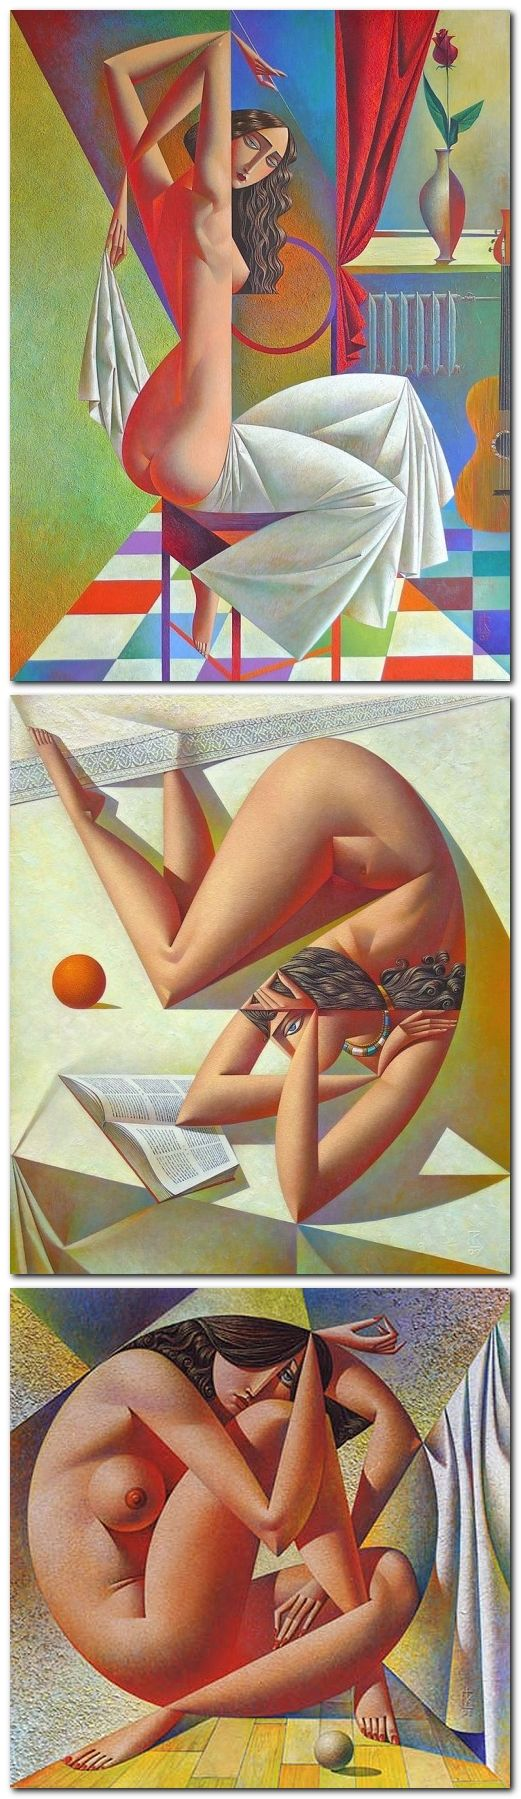 Georgy Kurasov